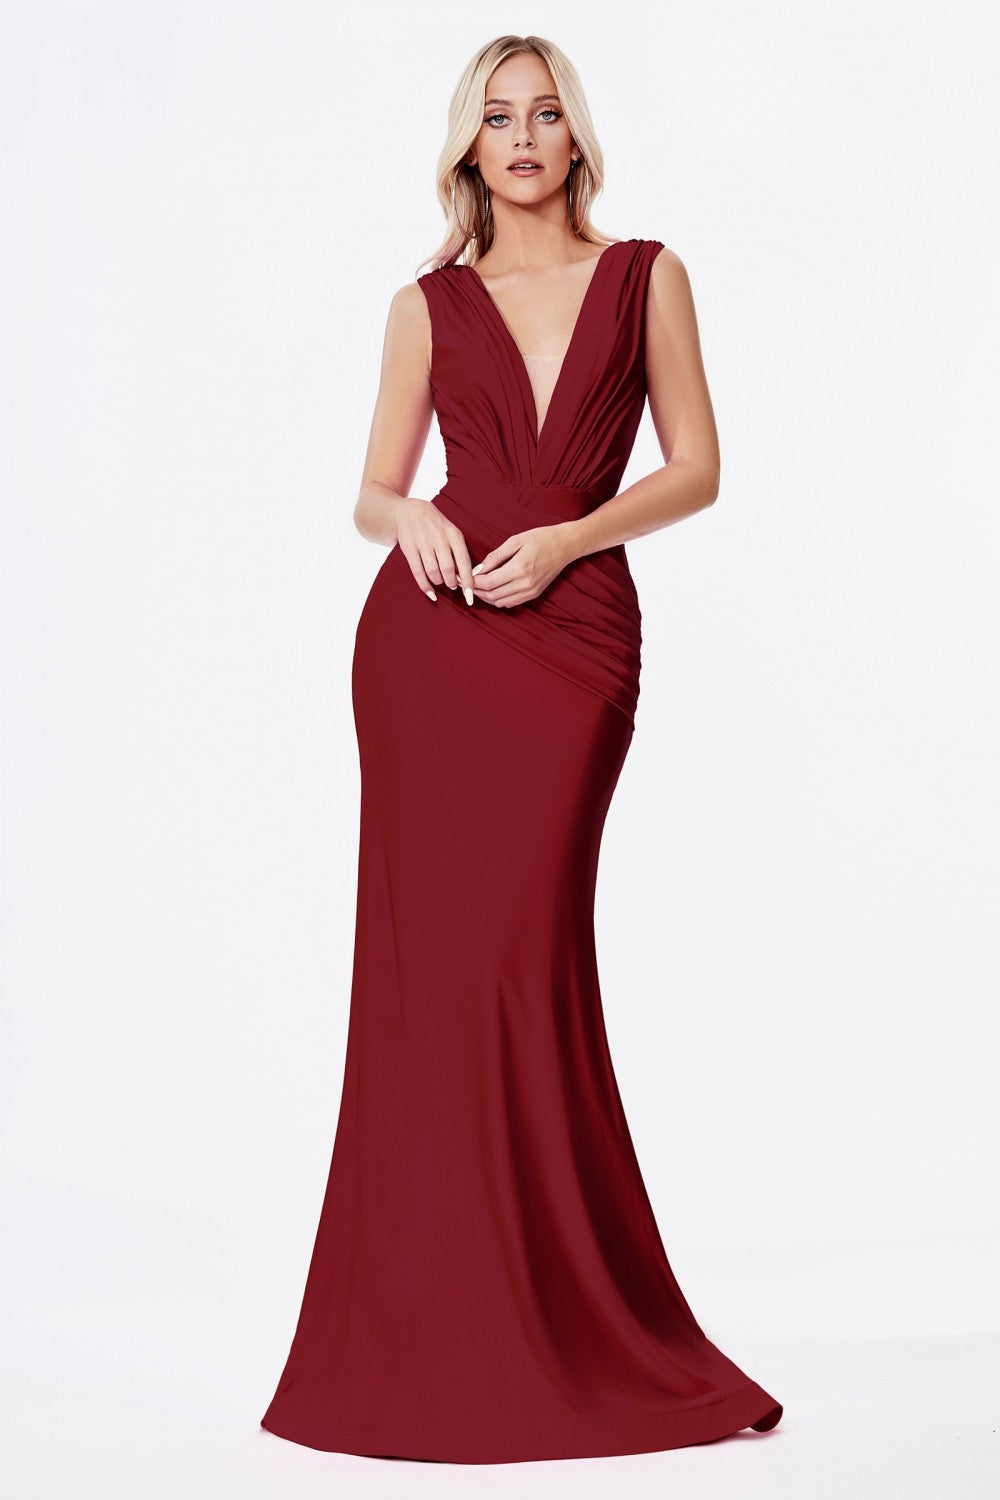 Denise Bridesmaid Dress in Burgundy Sleeveless Gown with Train C912WR-Burgundy SAMPLE IN STORE